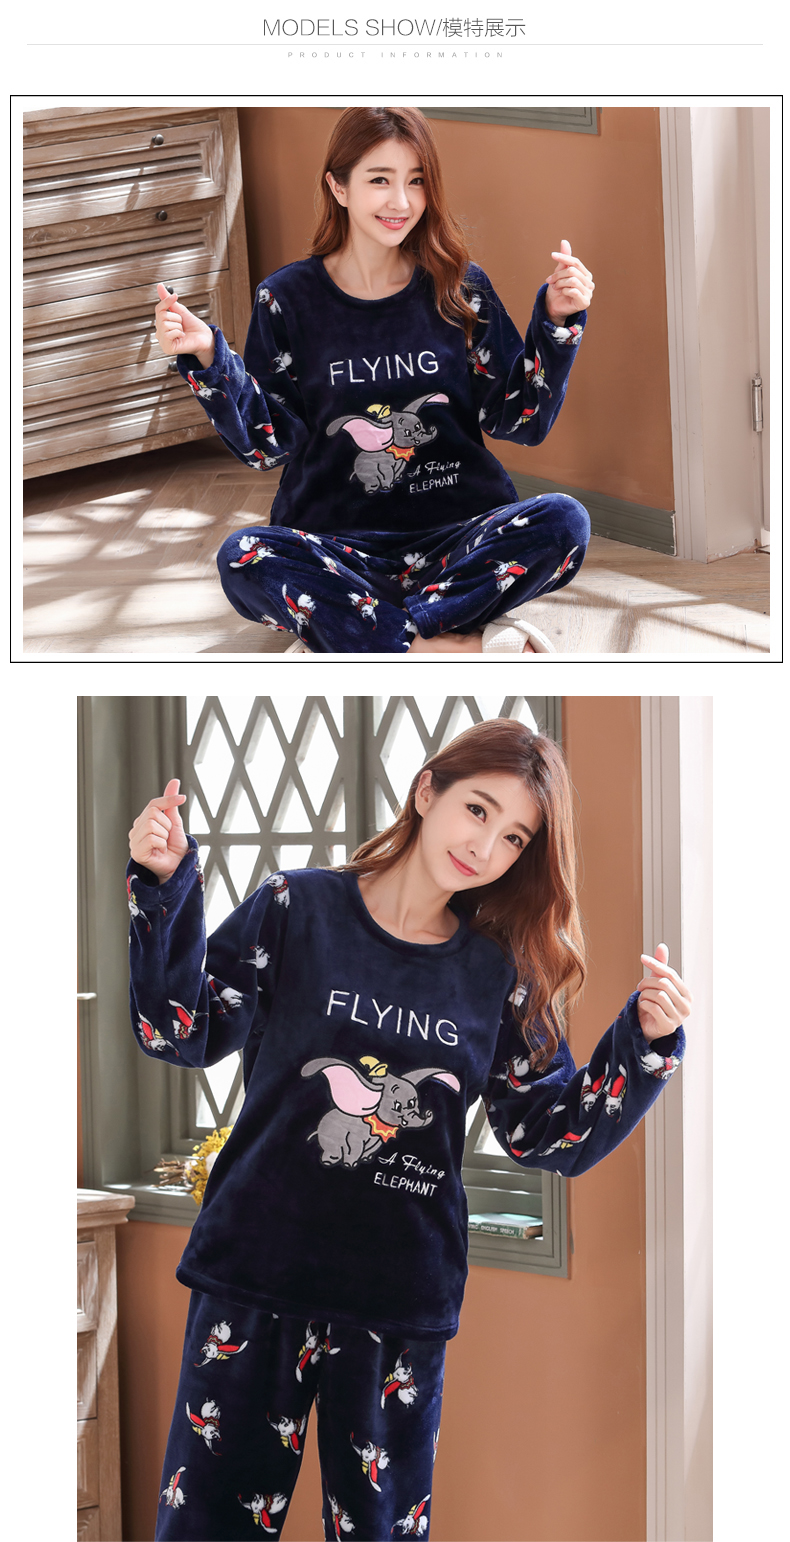 Long Sleeve Warm Flannel Pajamas Winter Women Pajama Sets Print Thicken Sleepwear Pyjamas Plus Size 3XL 4XL 5XL 85kg Nightwear 371